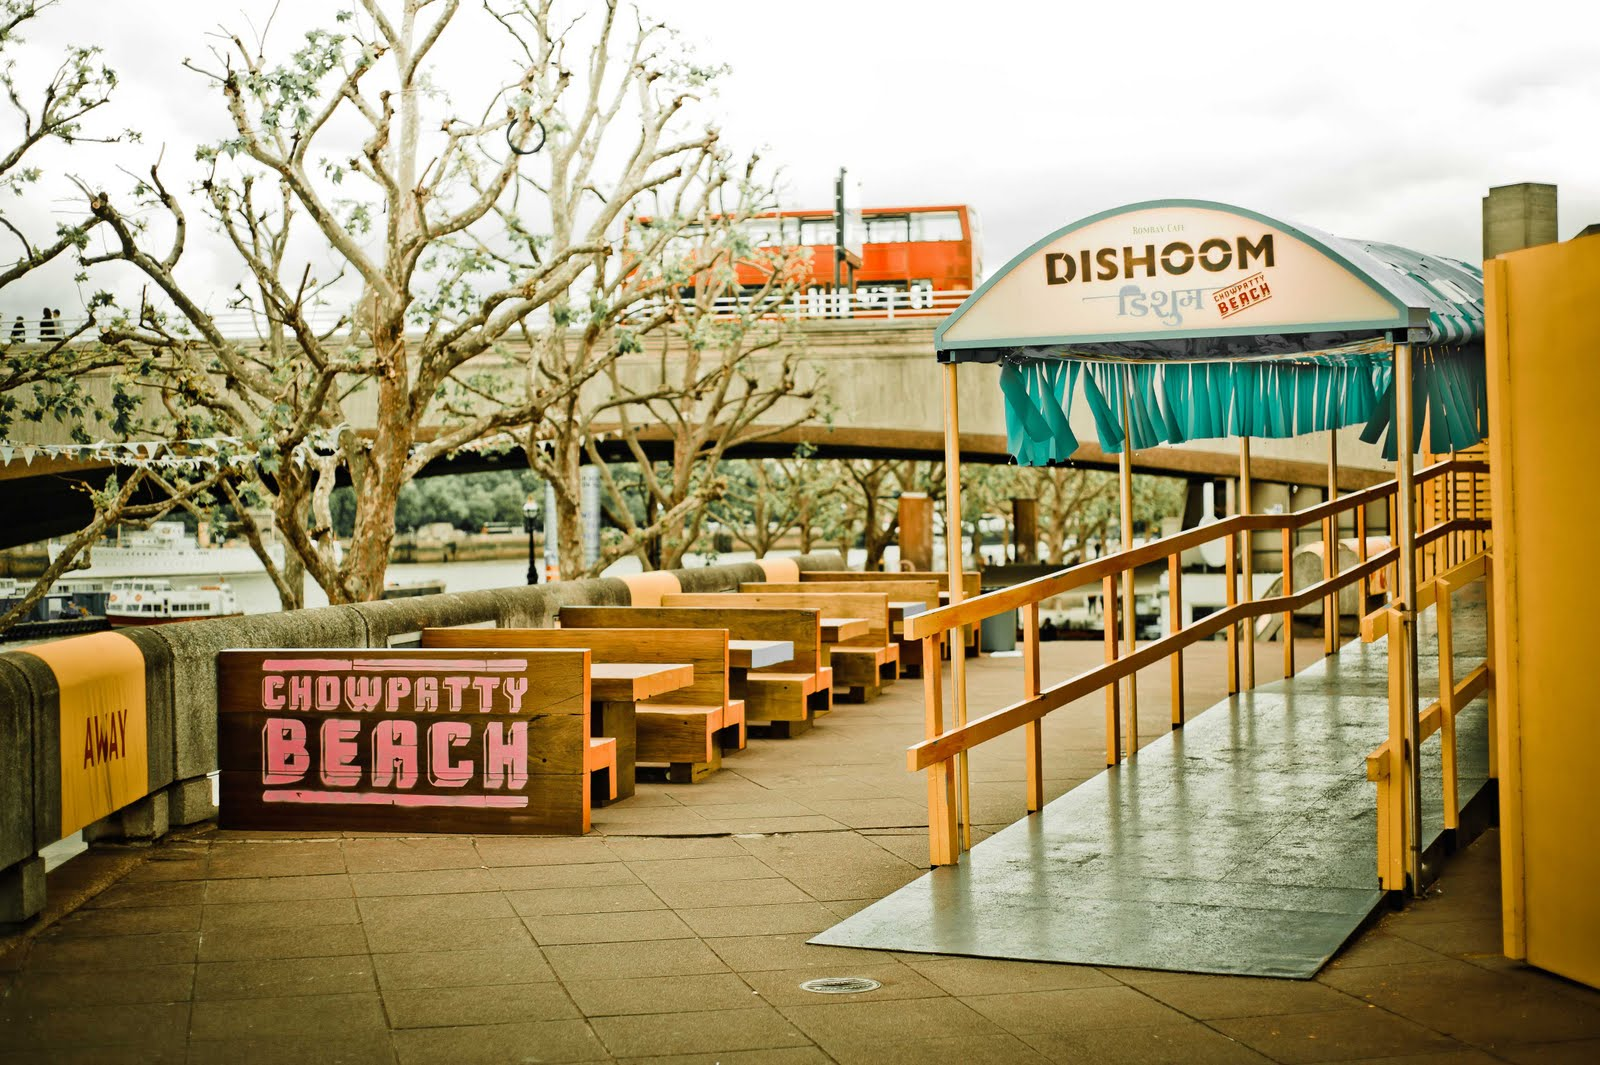 Sound Horn Please: Dishoom: A Fun Design Story